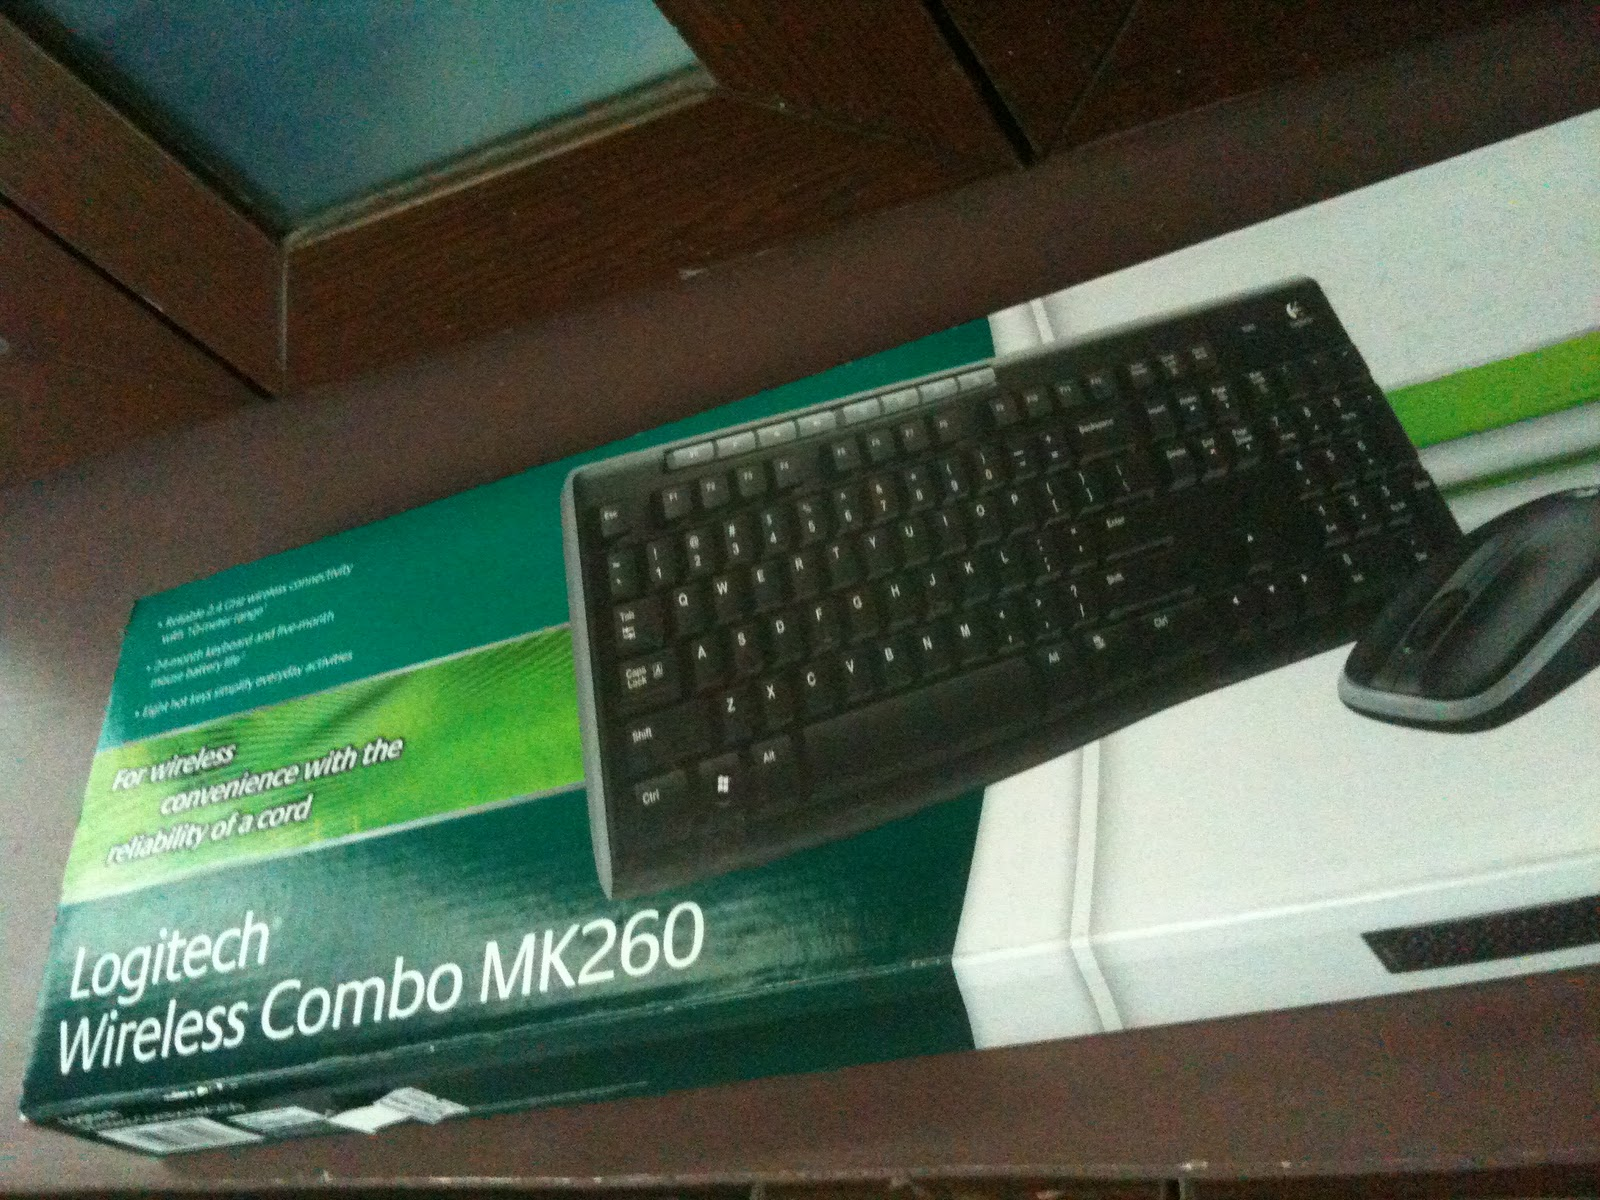 d4ac1951bf9 Random Thoughts: Review: Logitech Wireless Combo MK260